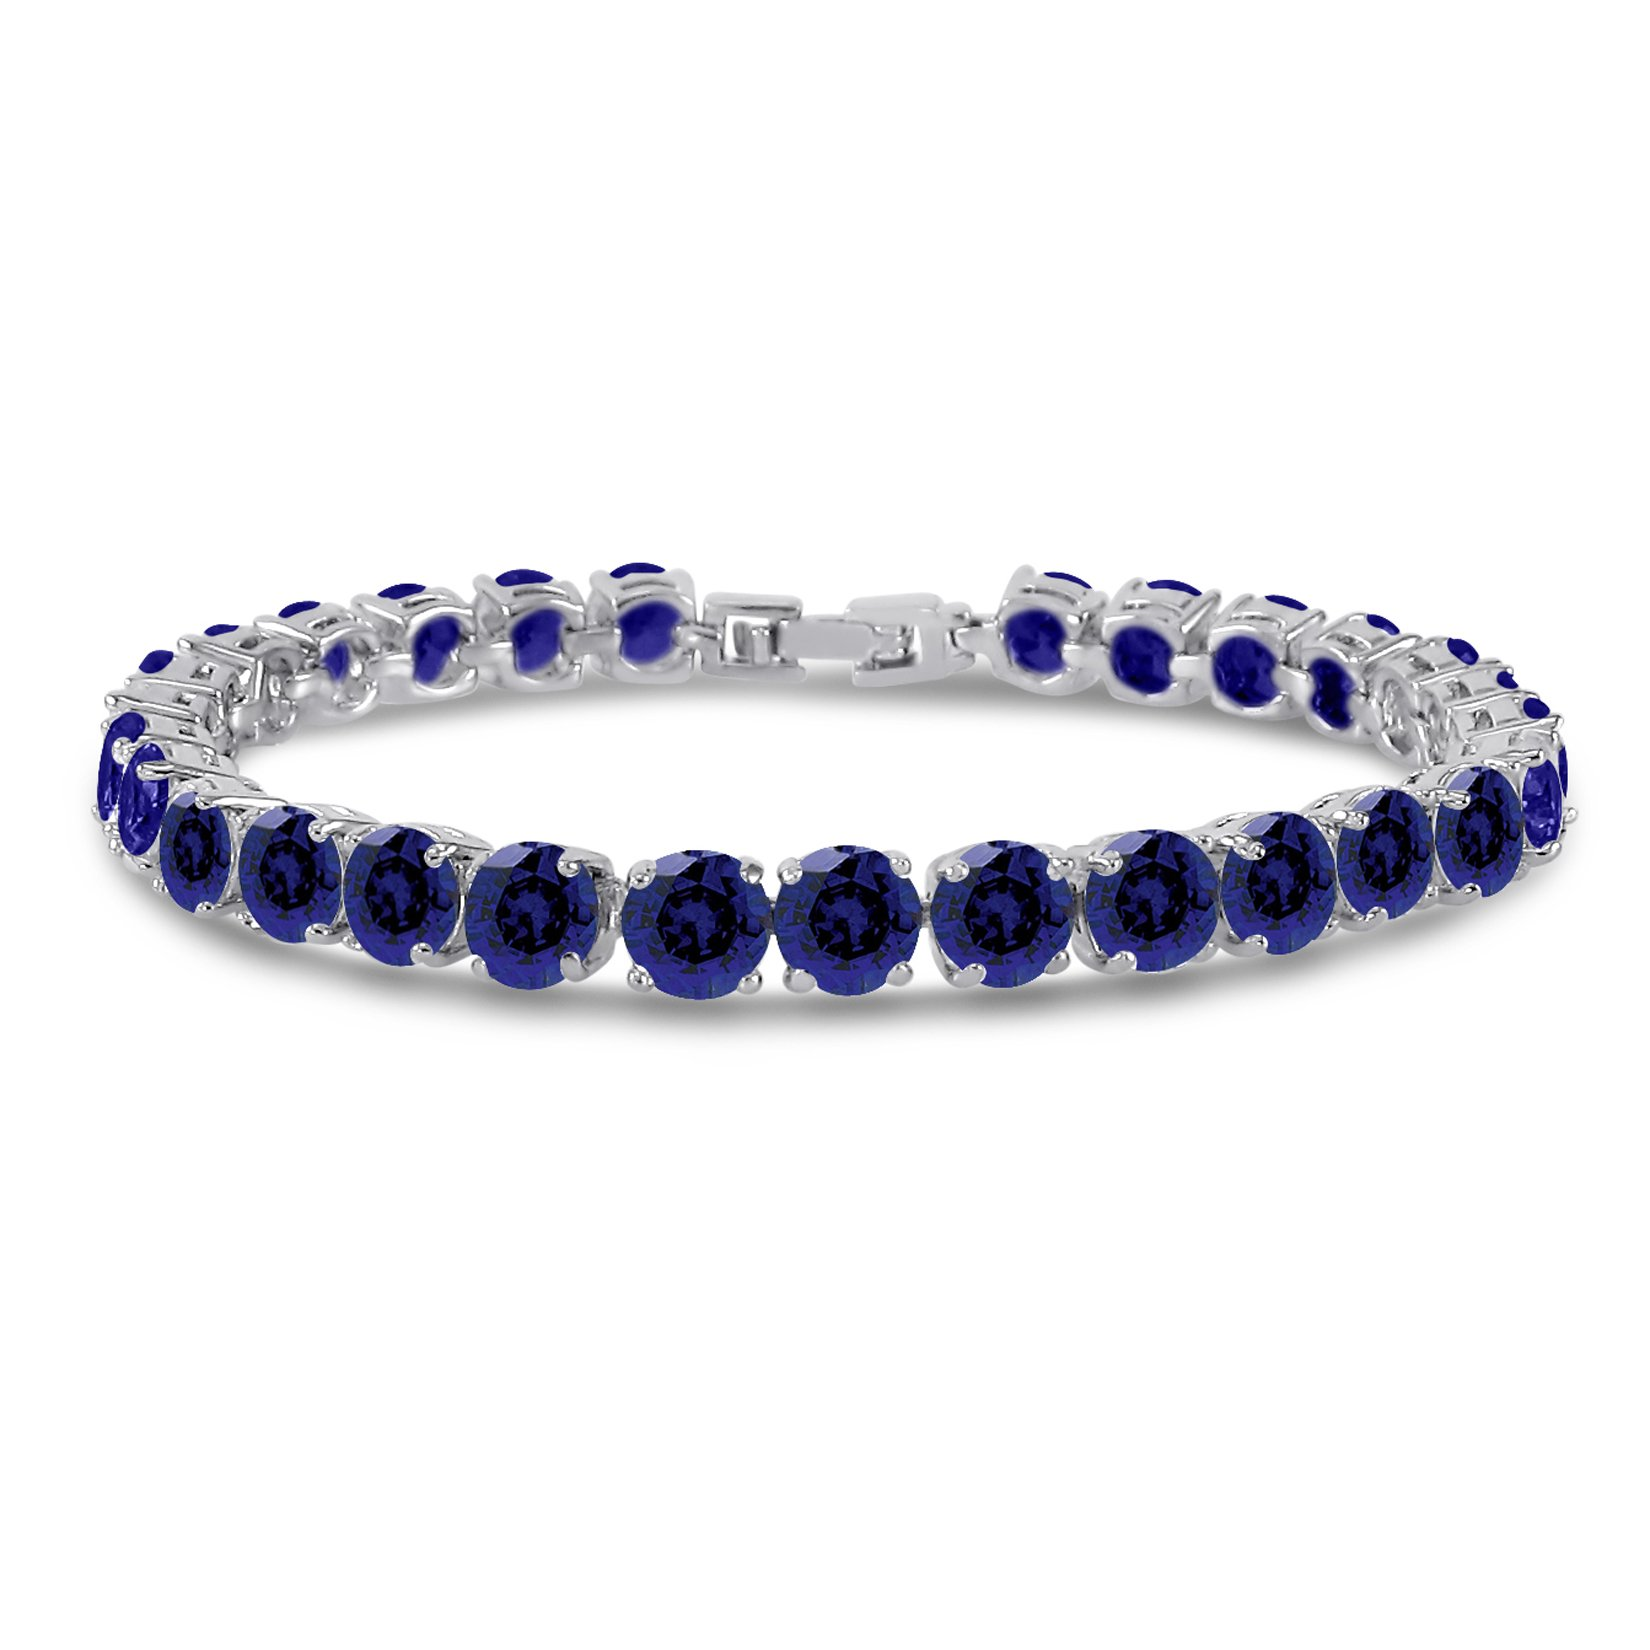 Simulated Sapphire Tennis Bracelet 6mm Round Cut Silver over Brass 7 inch